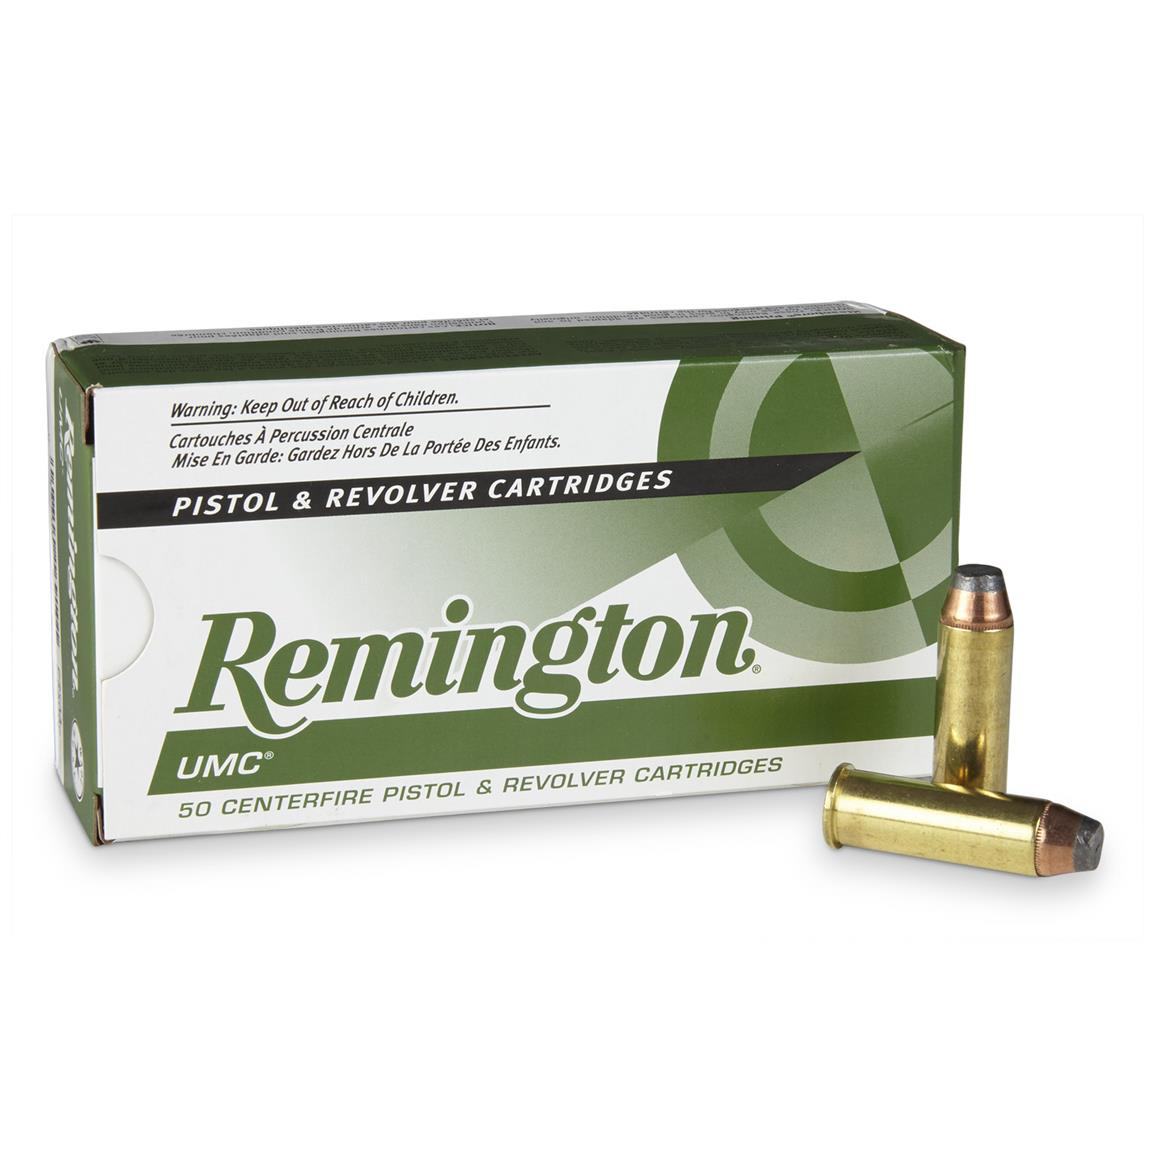 Remington UMC Handgun,  44 Magnum, JSP, 180 Grain, 50 Rounds